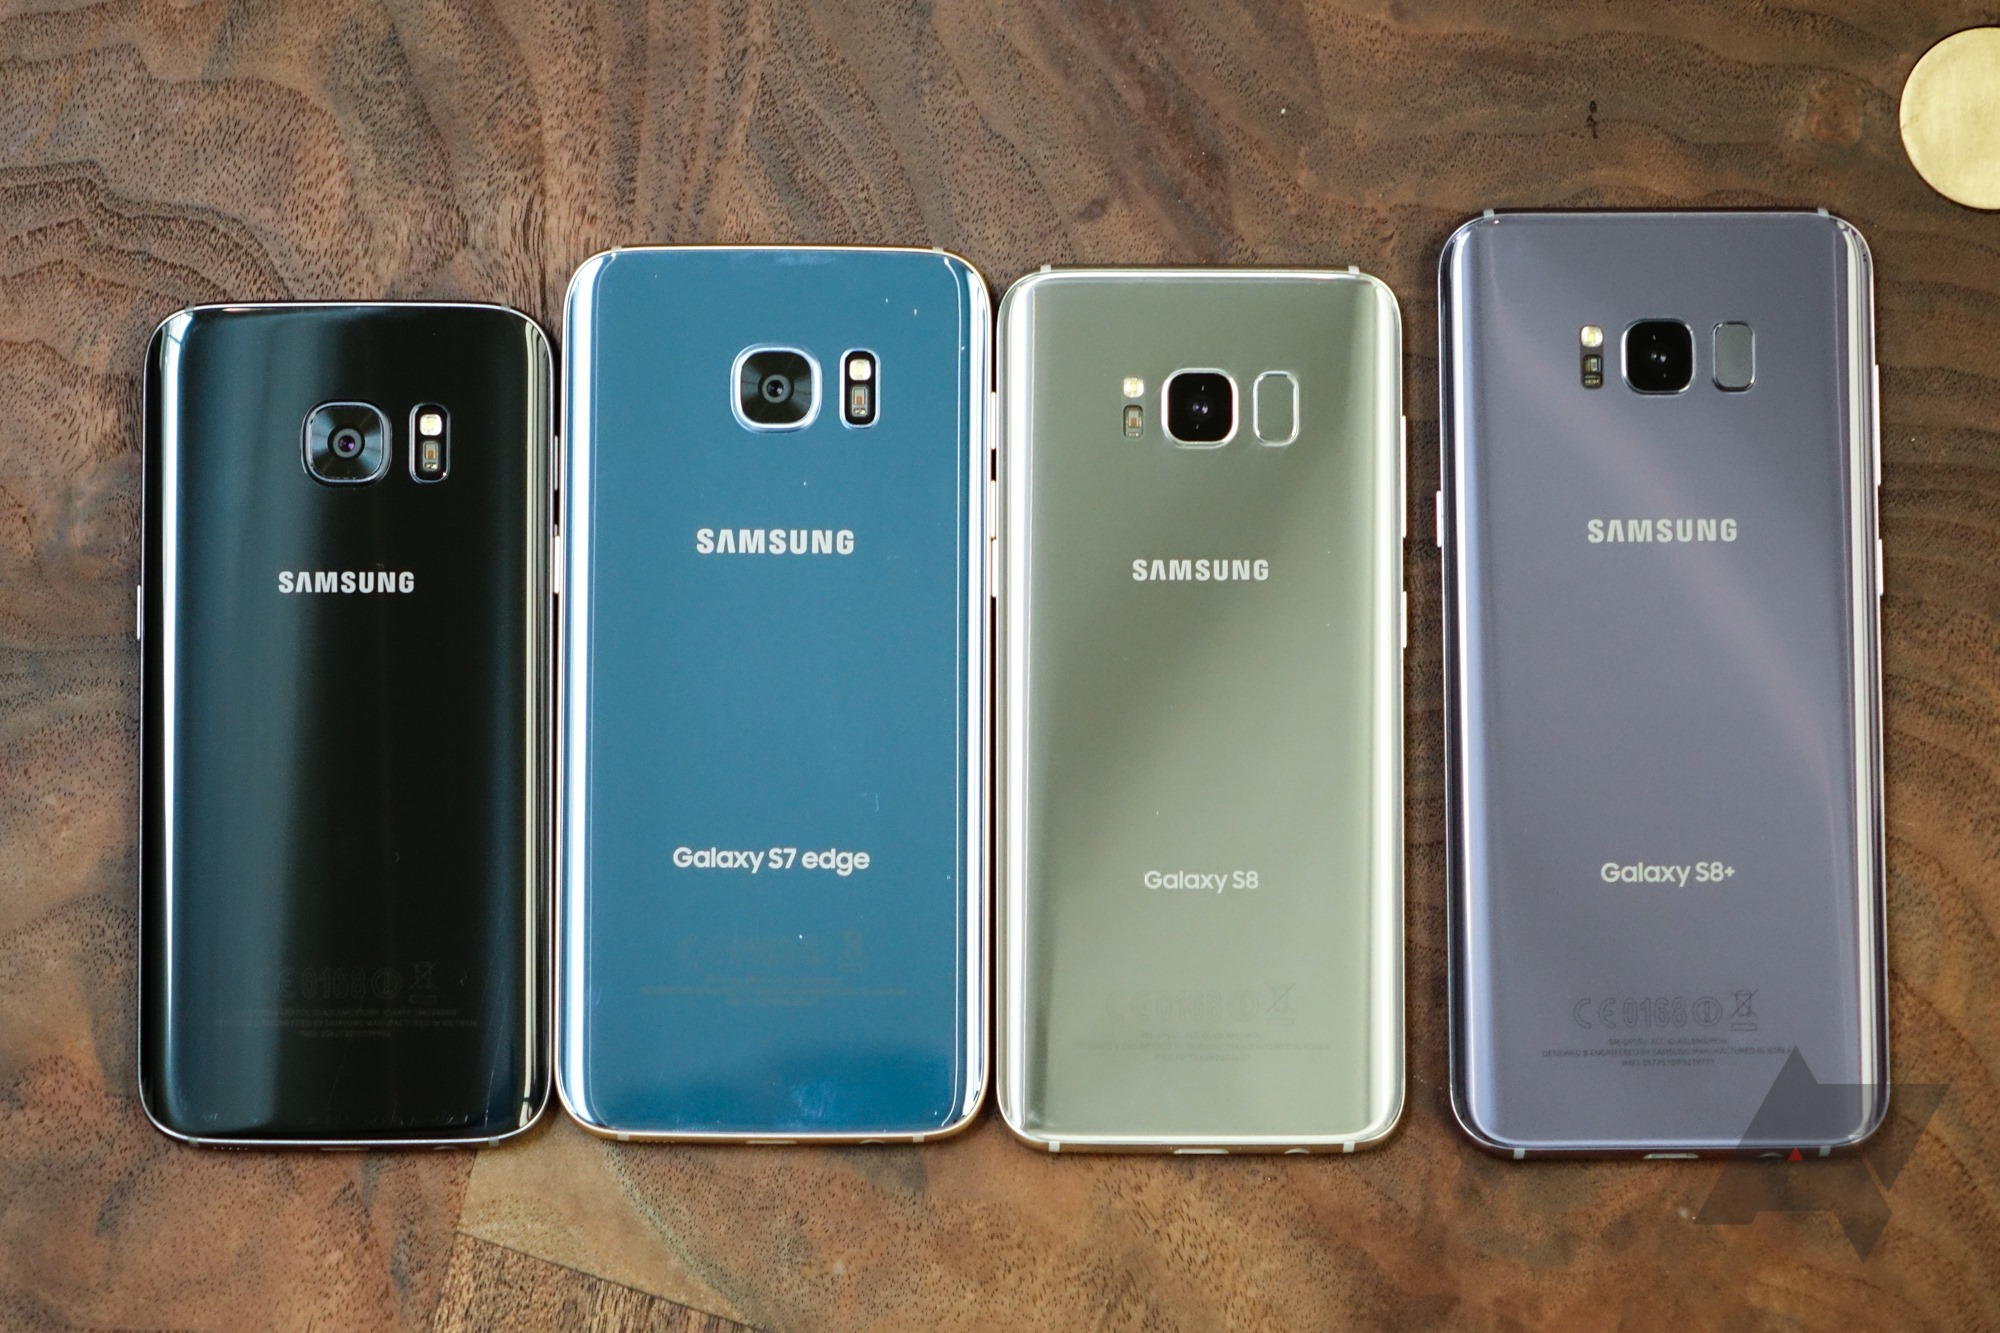 galaxy s7 and s7 edge vs galaxy s8 and galaxy s8 photos. Black Bedroom Furniture Sets. Home Design Ideas